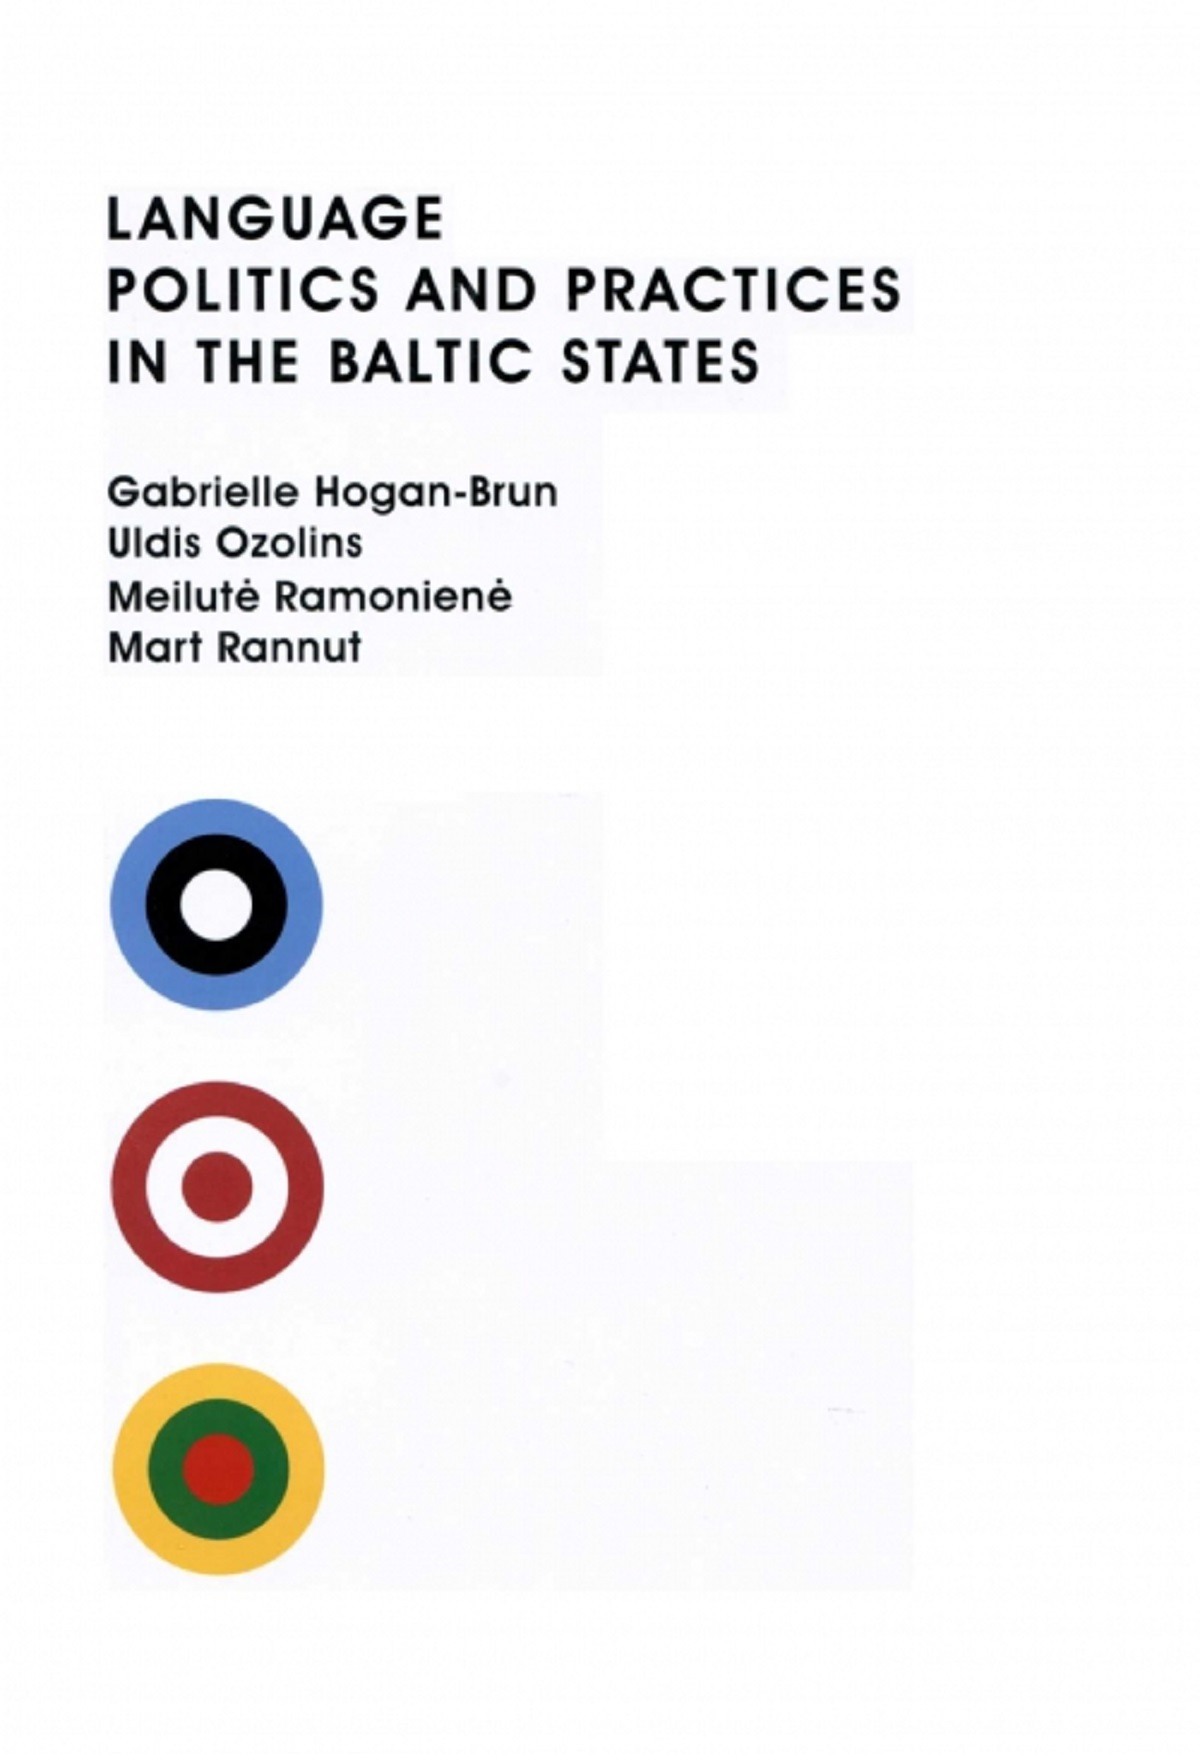 Language Politics and Practices in the Baltic States